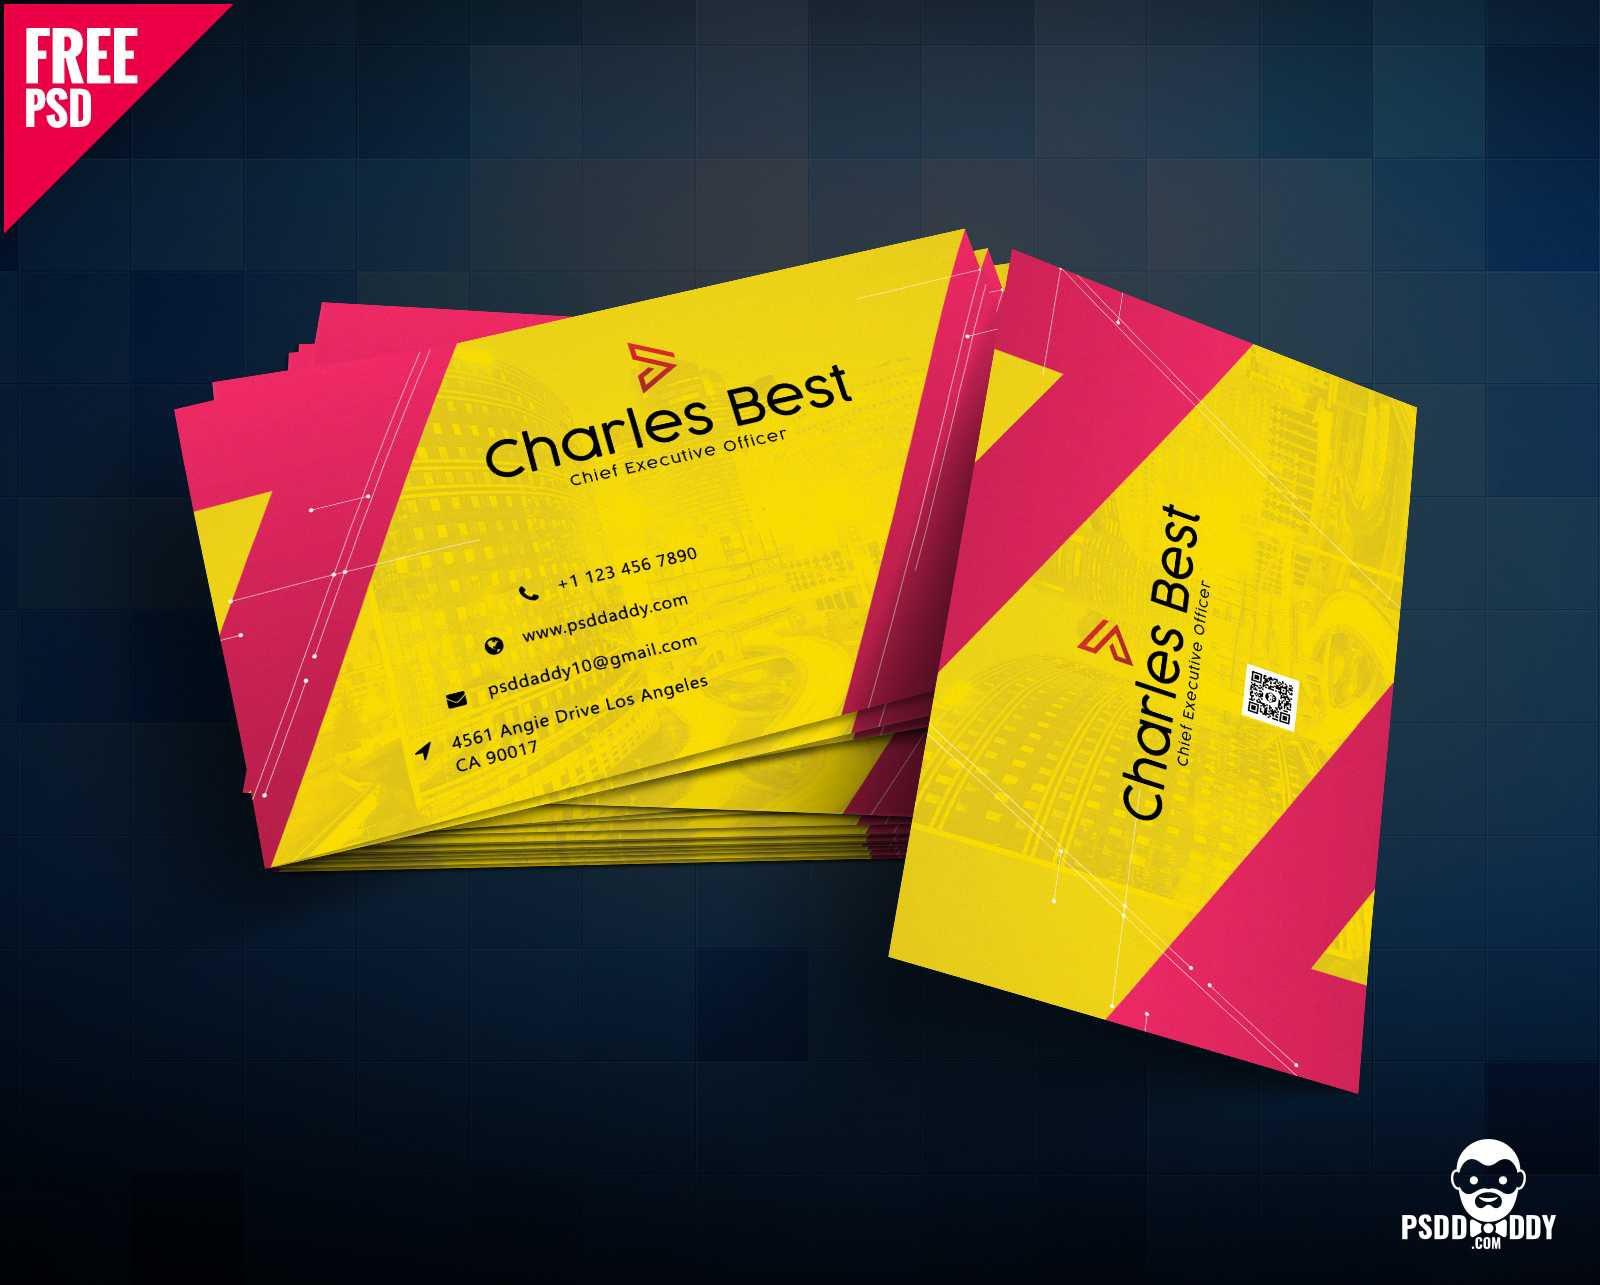 Download] Creative Business Card Free Psd | Psddaddy Throughout Photoshop Cs6 Business Card Template